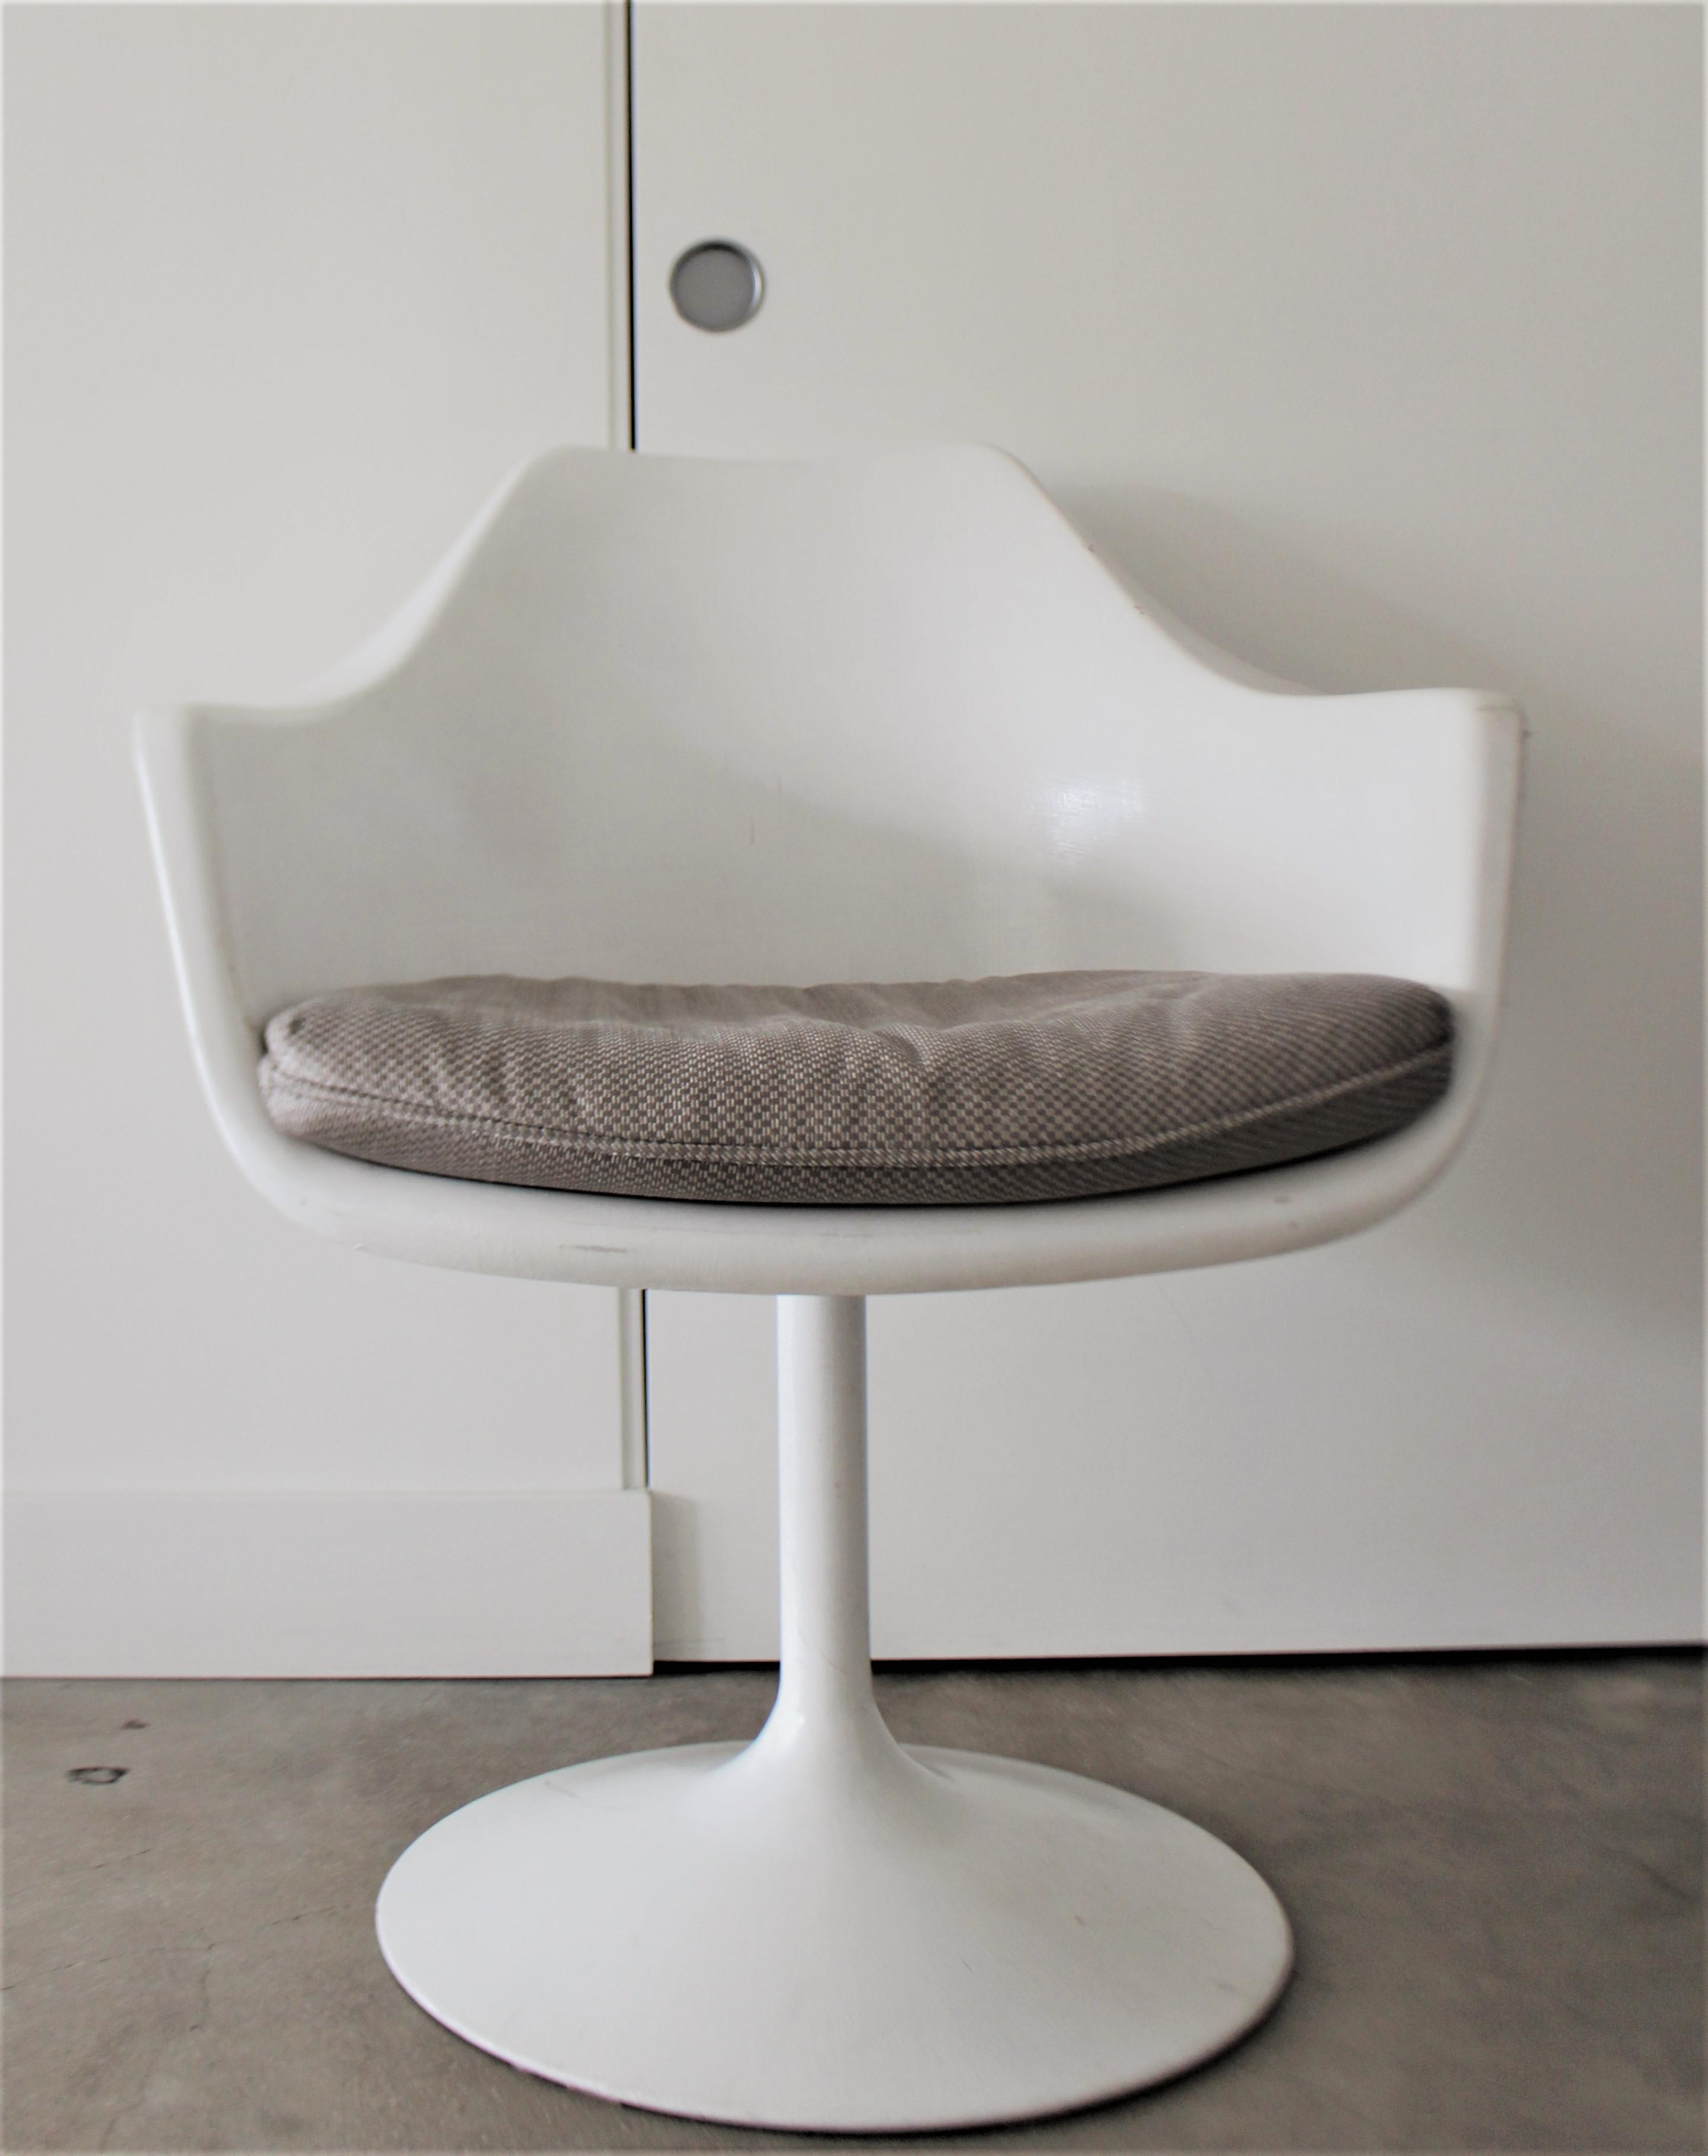 Four Gorgeous Vintage Fiberglass Chairs Styled After The Famous Saarinen  Tulip Chair. They Have Metal